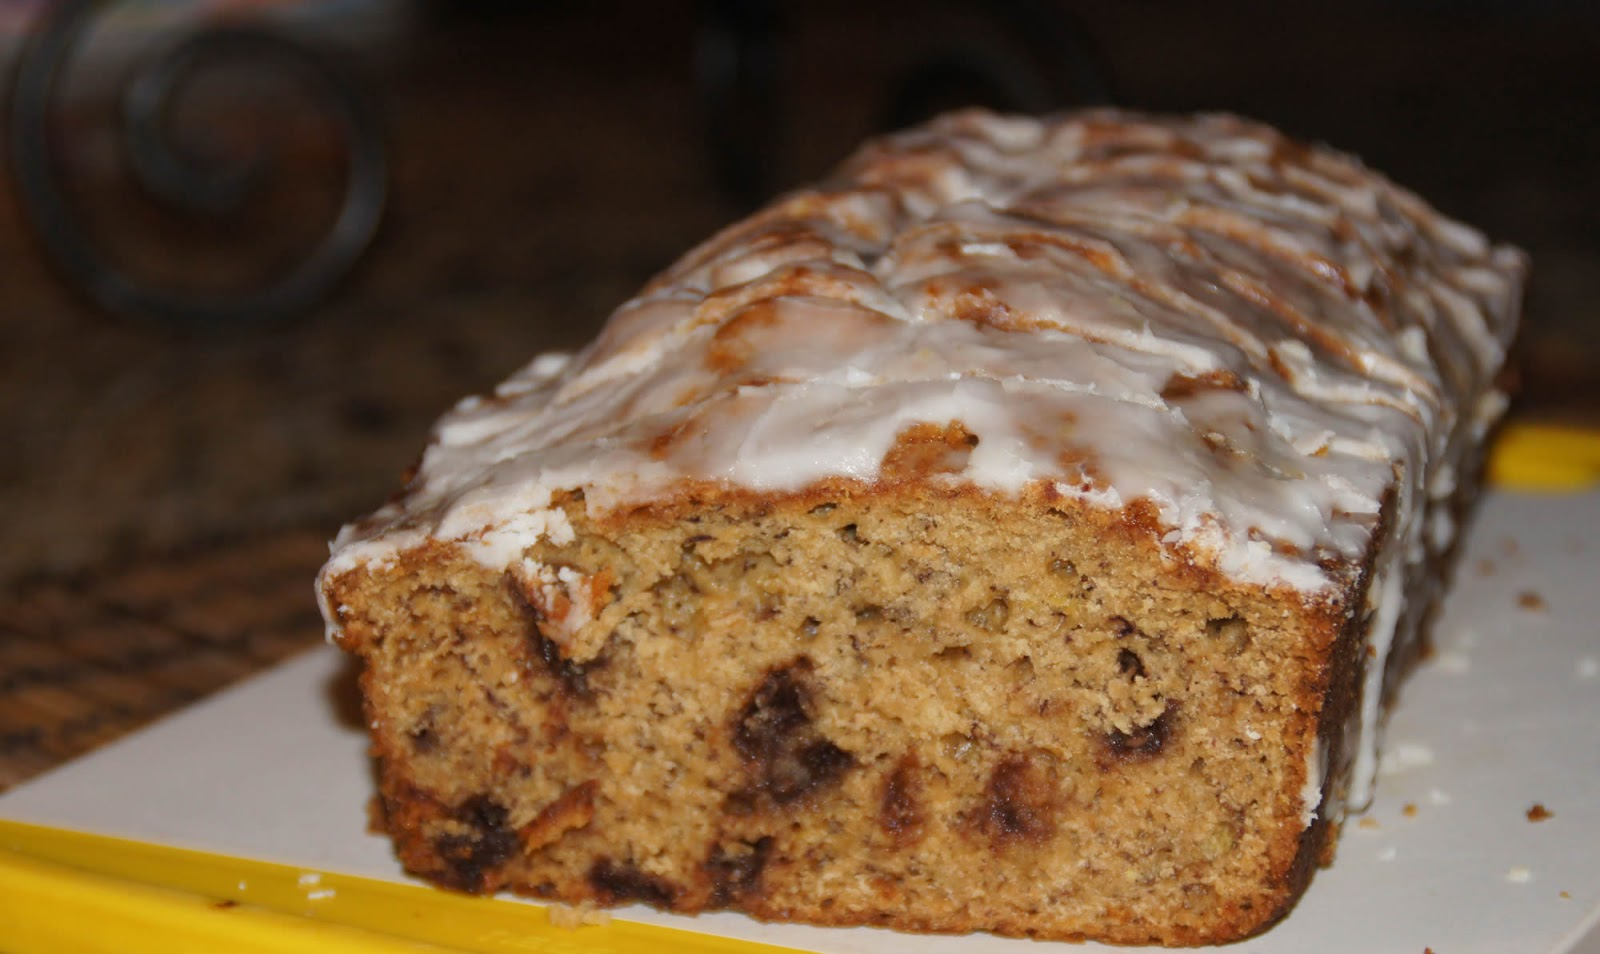 Little Bit of Everything: Lemon Olive Oil Banana Bread